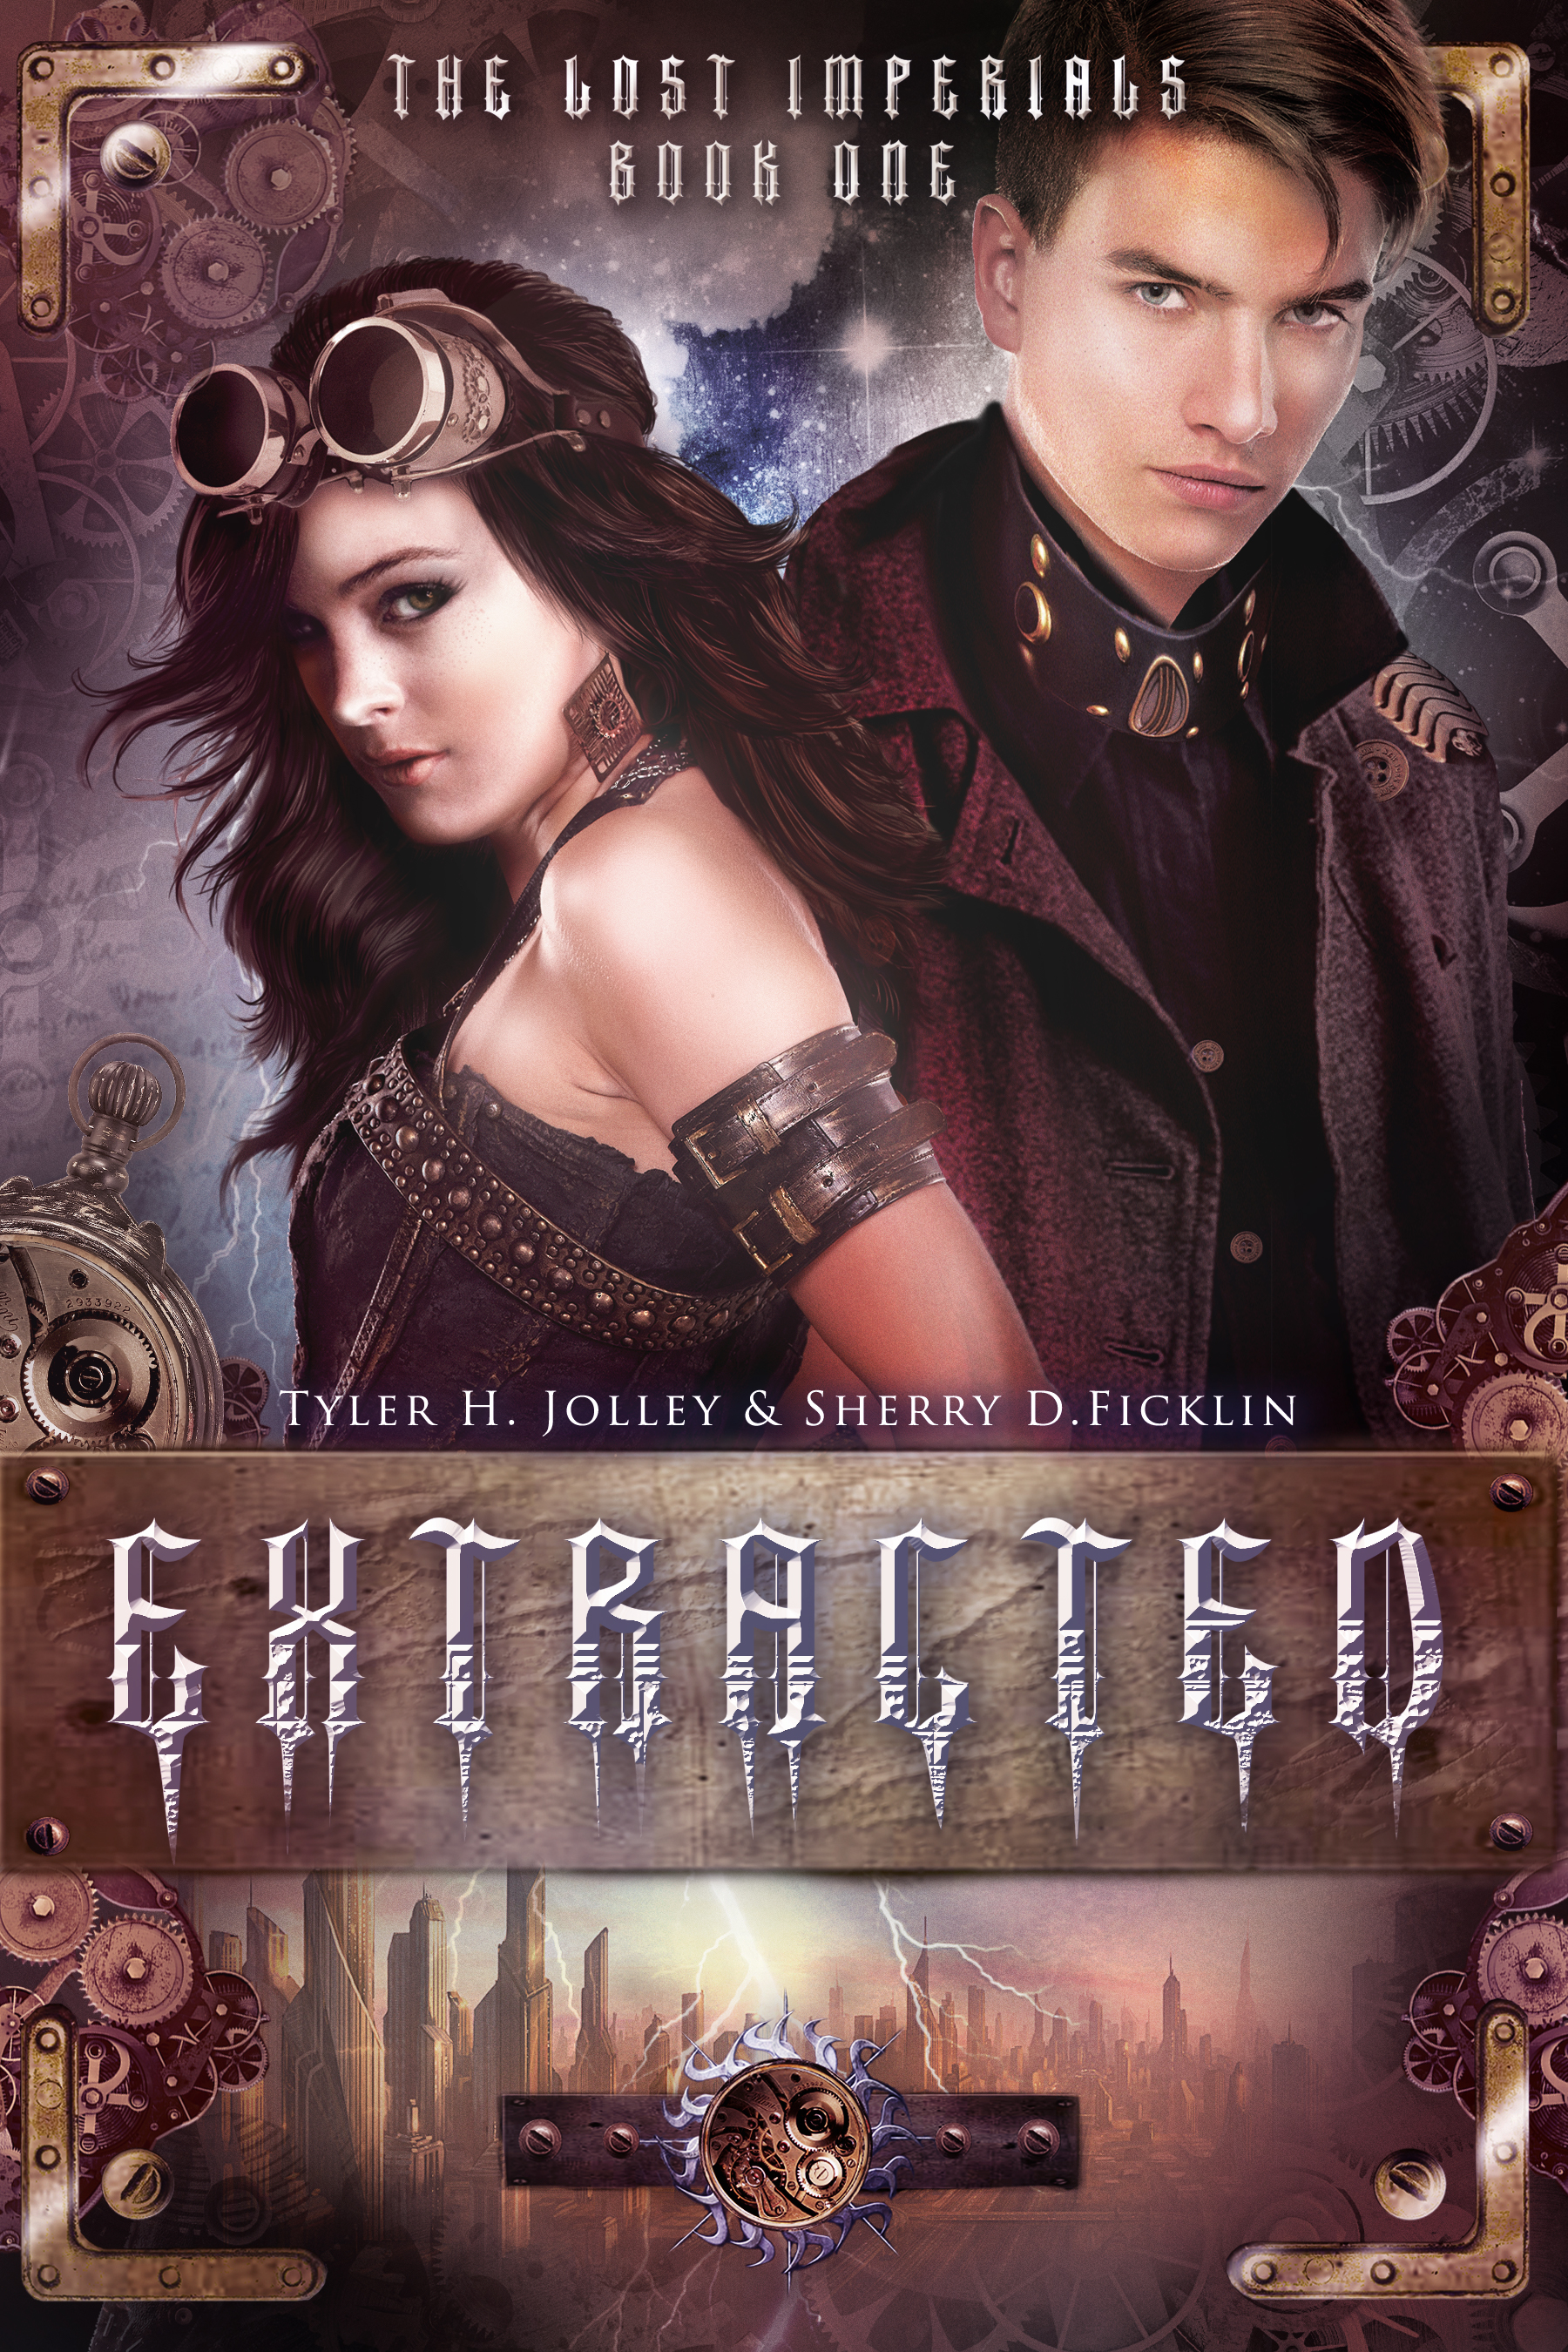 Extracted by Sherry D. Ficklin, Tyler H. Jolley